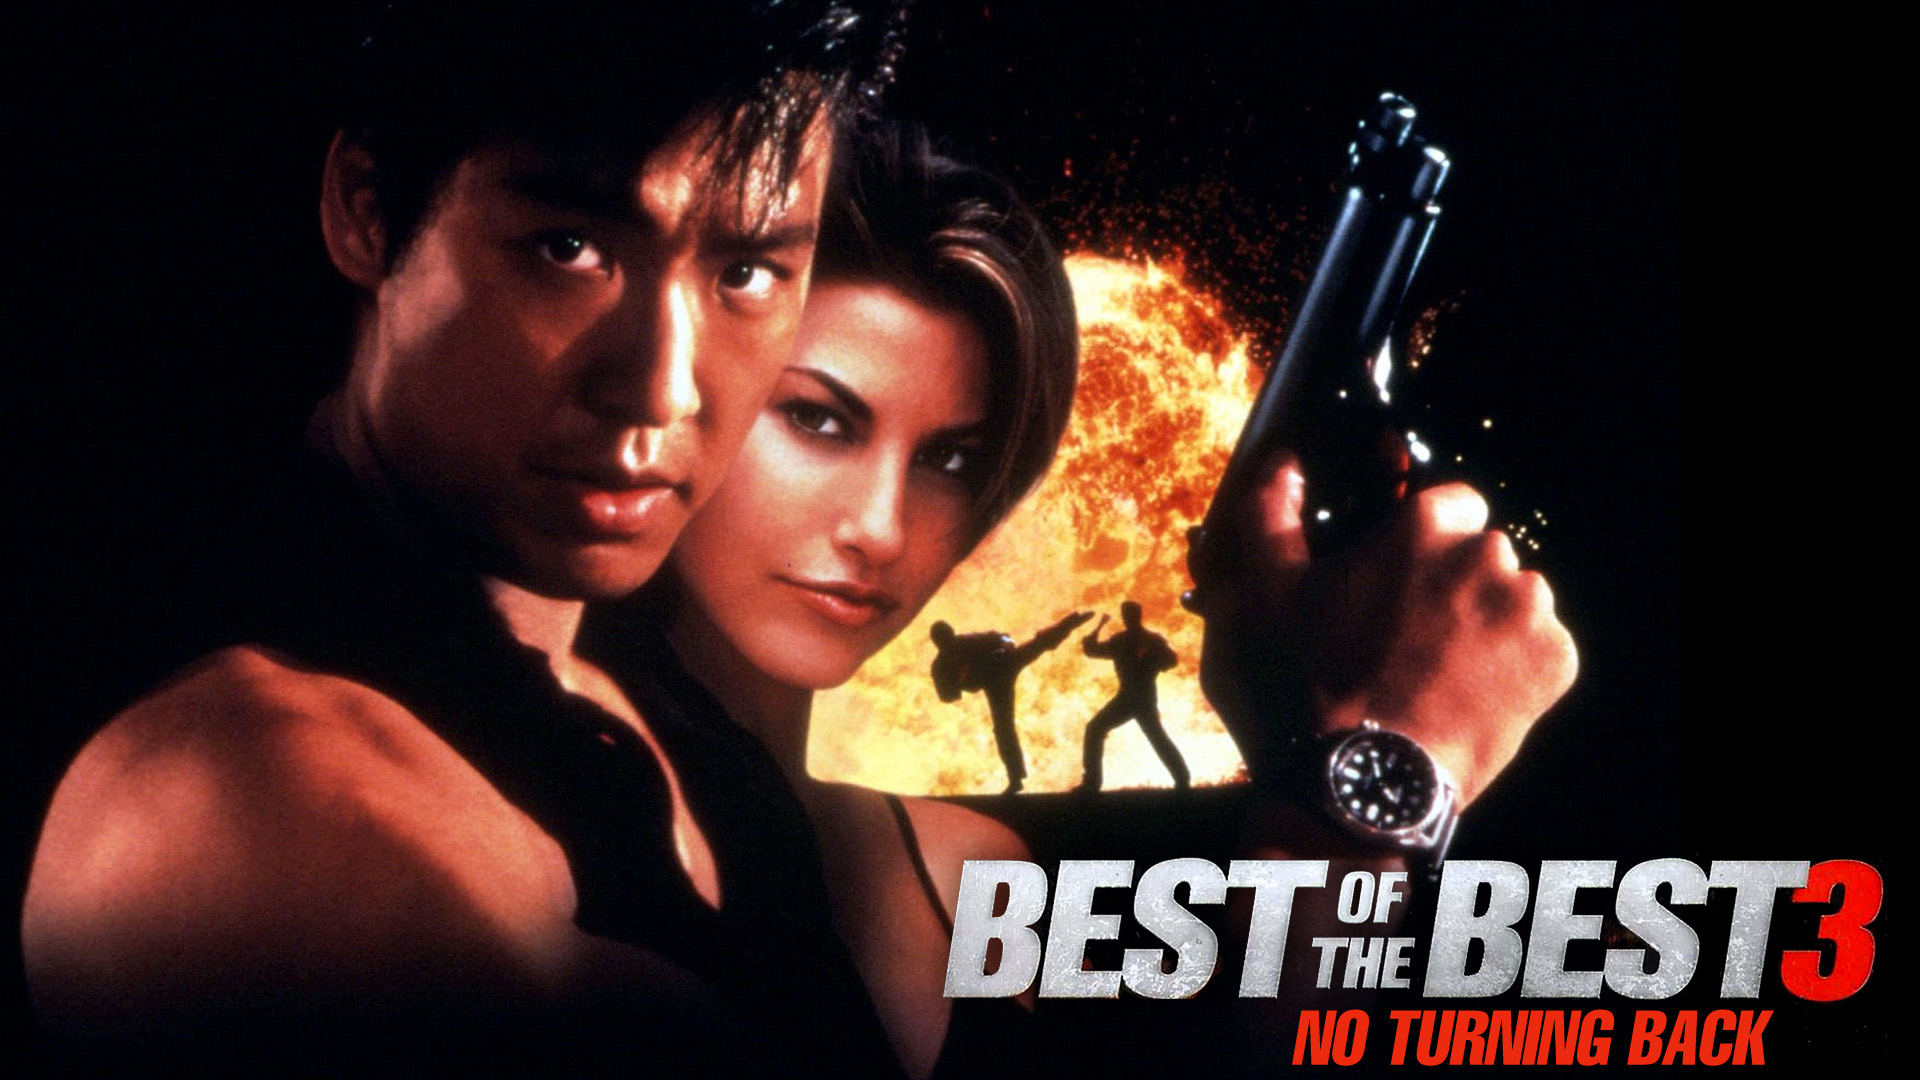 Best of the Best 3 - No Turning Back